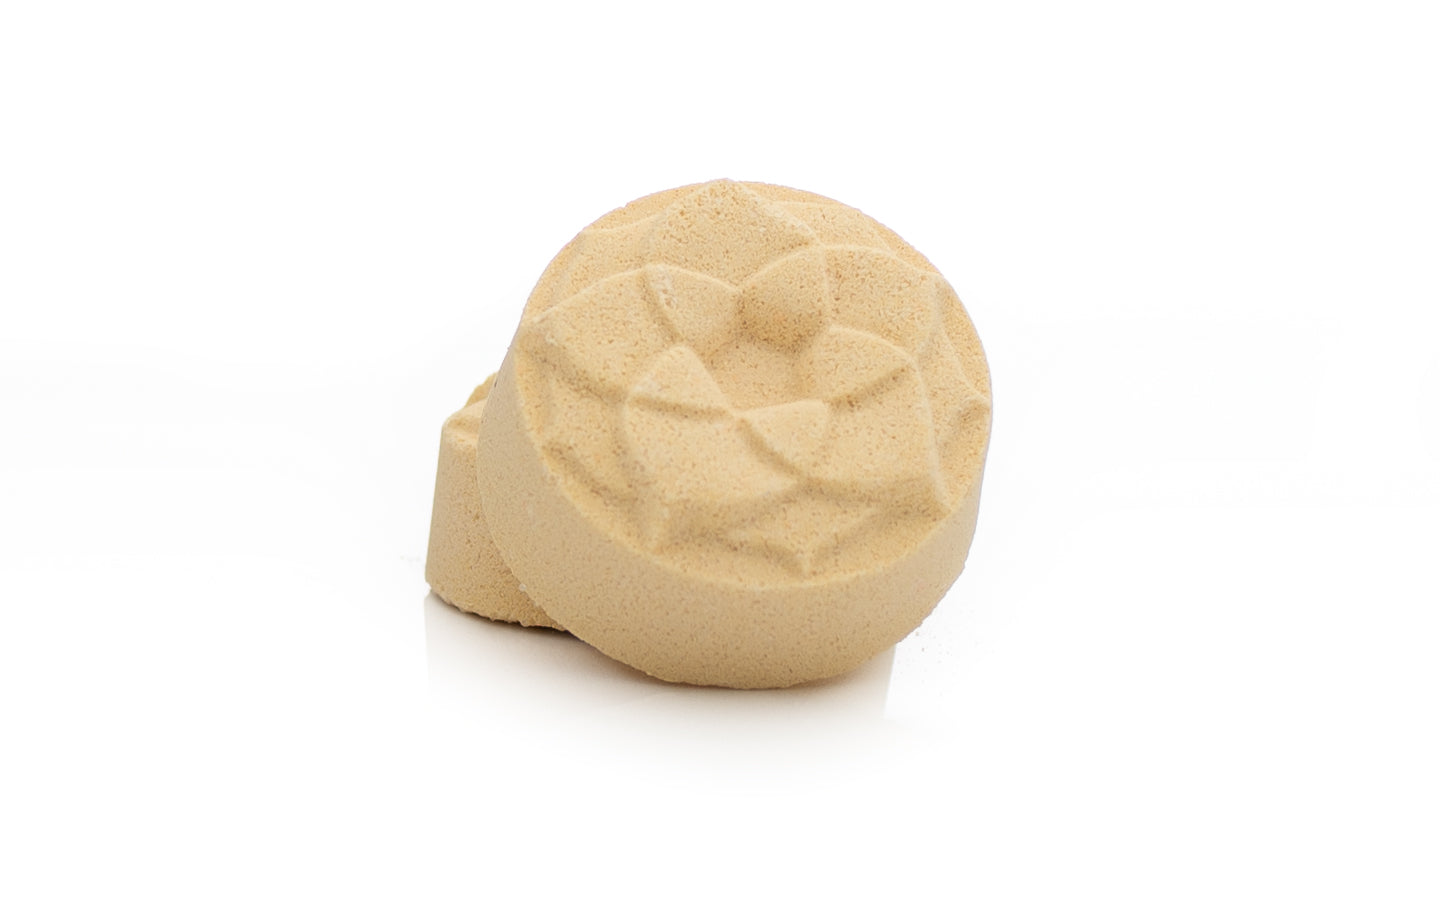 shower steamer, aromatherapy, bath bomb, white kaolin clay, shower, bath, bath and body, citrus shower steamer, citrus bath bomb